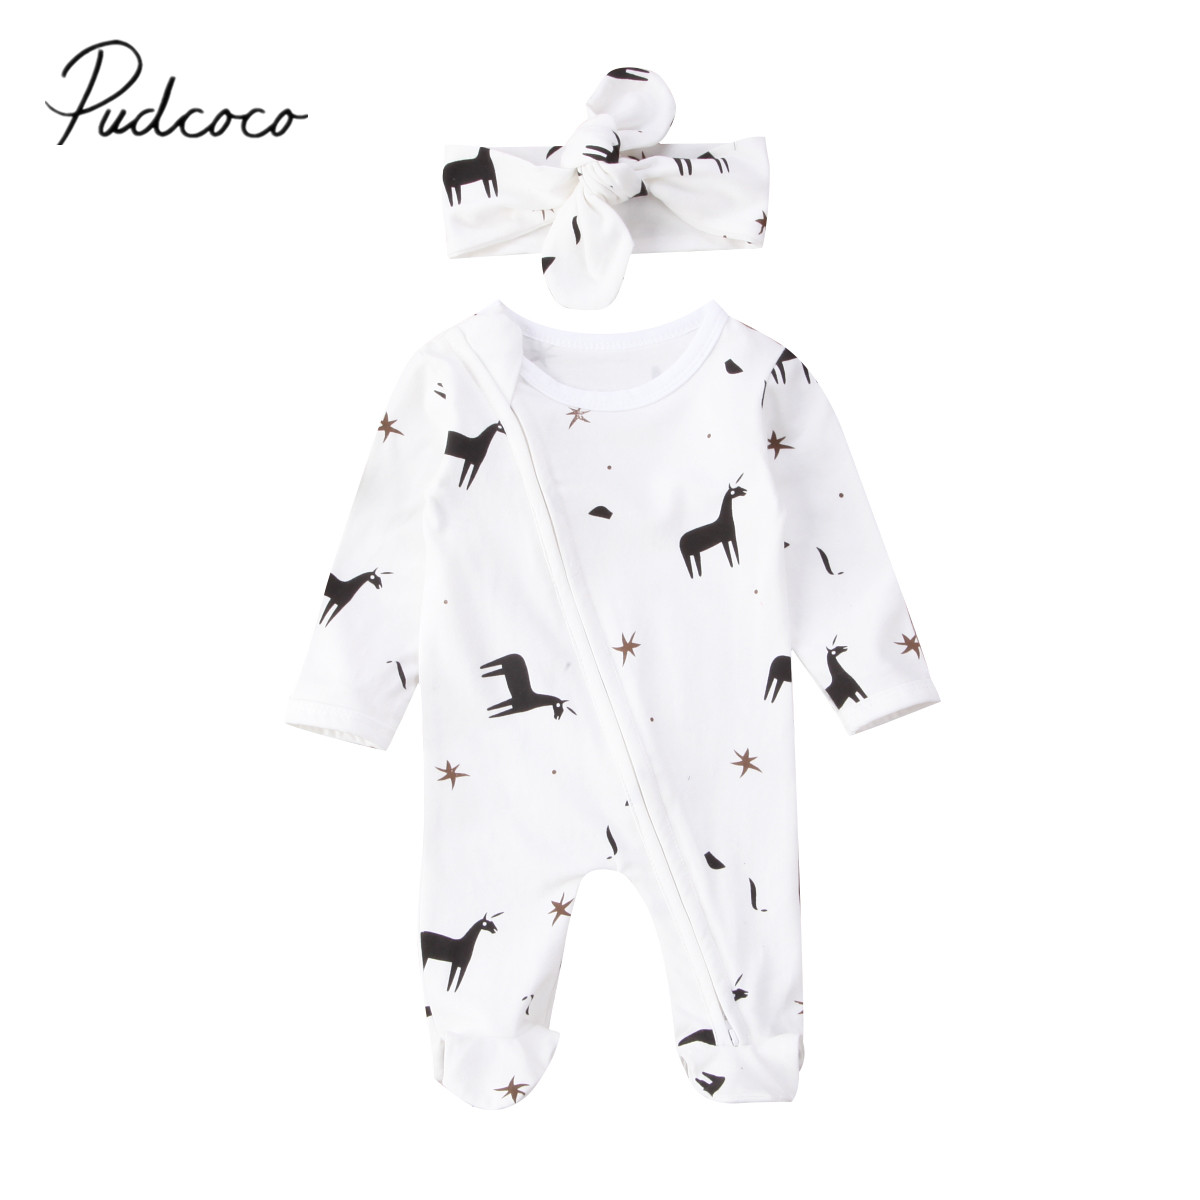 2018 Brand New Newborn Toddler Infant Baby Girl Boys Long Sleeve Bodysuit Jumpsuit Playsuit Headband Outfits Unicorn Clothes Set baby sweater child knit sweaters toddler winter warm long sleeve bodysuit cardigan girl jumpsuit kardigan bebe traje de cuerpo